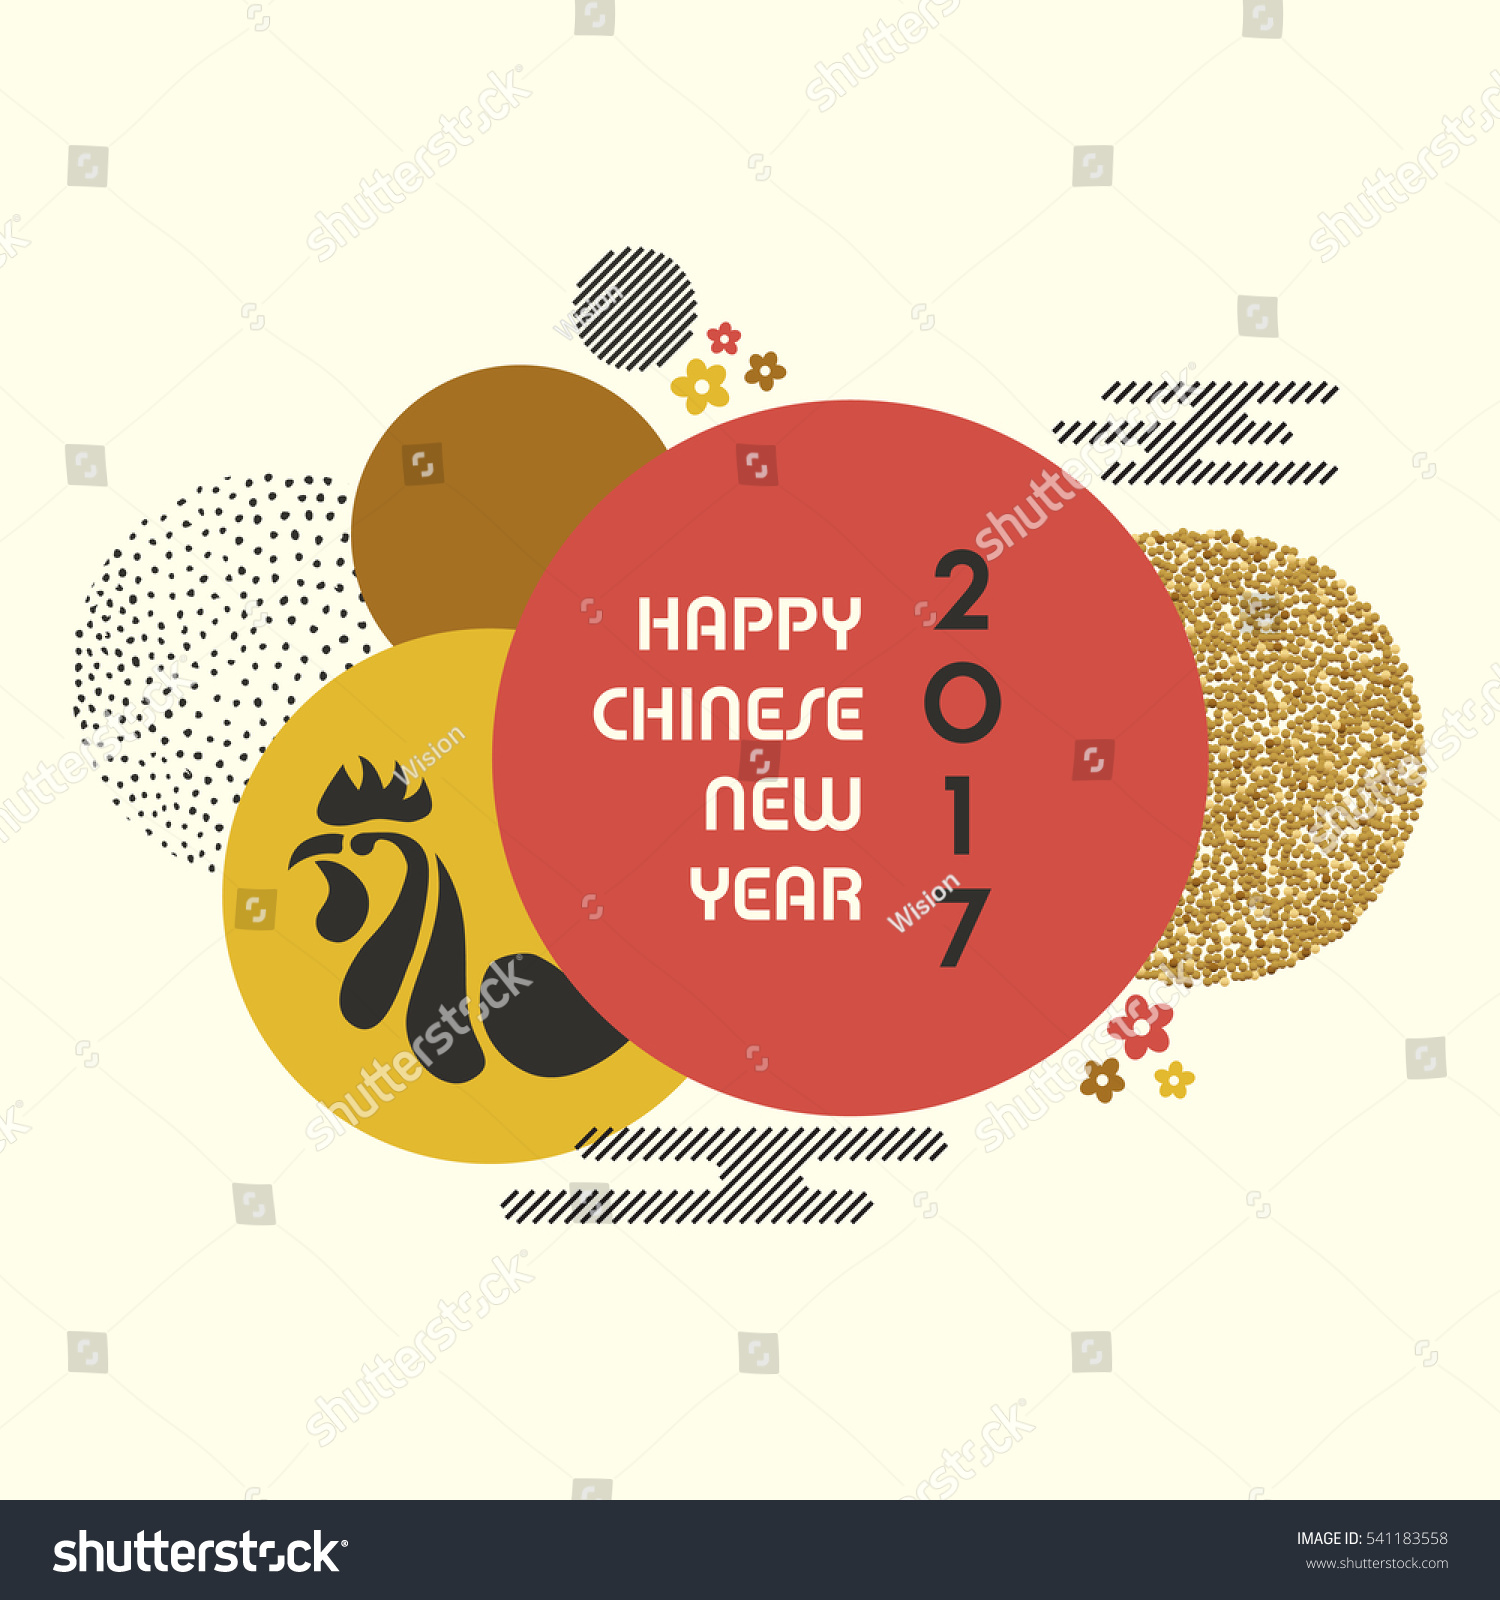 Chinese New Year Greeting Design 2017 Stock Vector Royalty Free